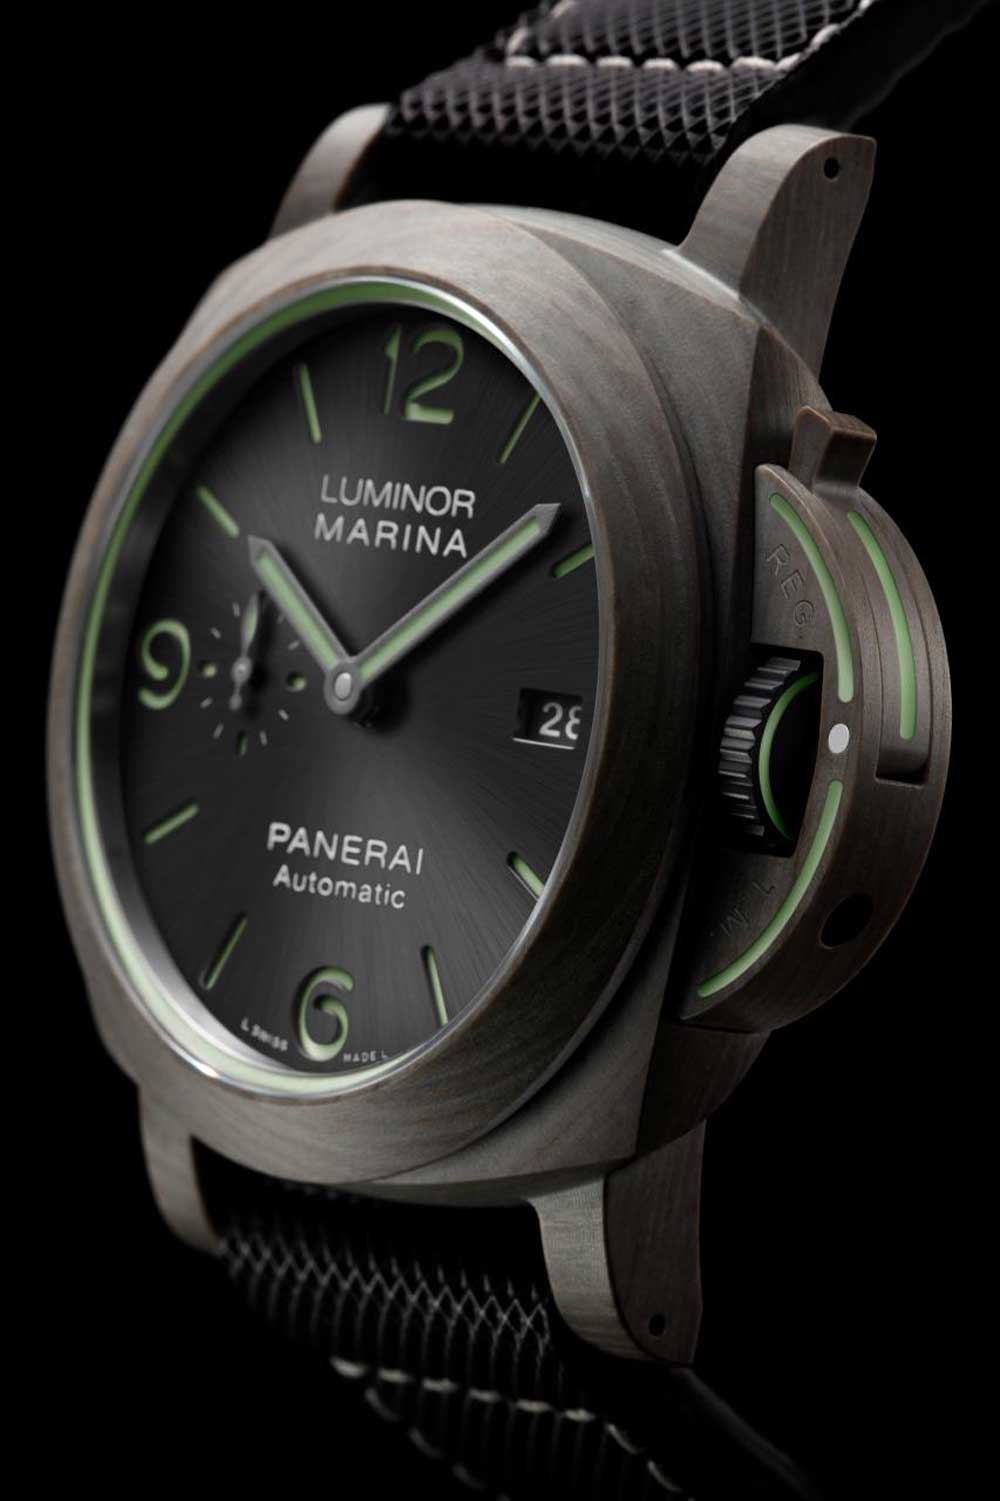 Basalt fibers are processed and developed in the same way as the Carbotech material to create this case.